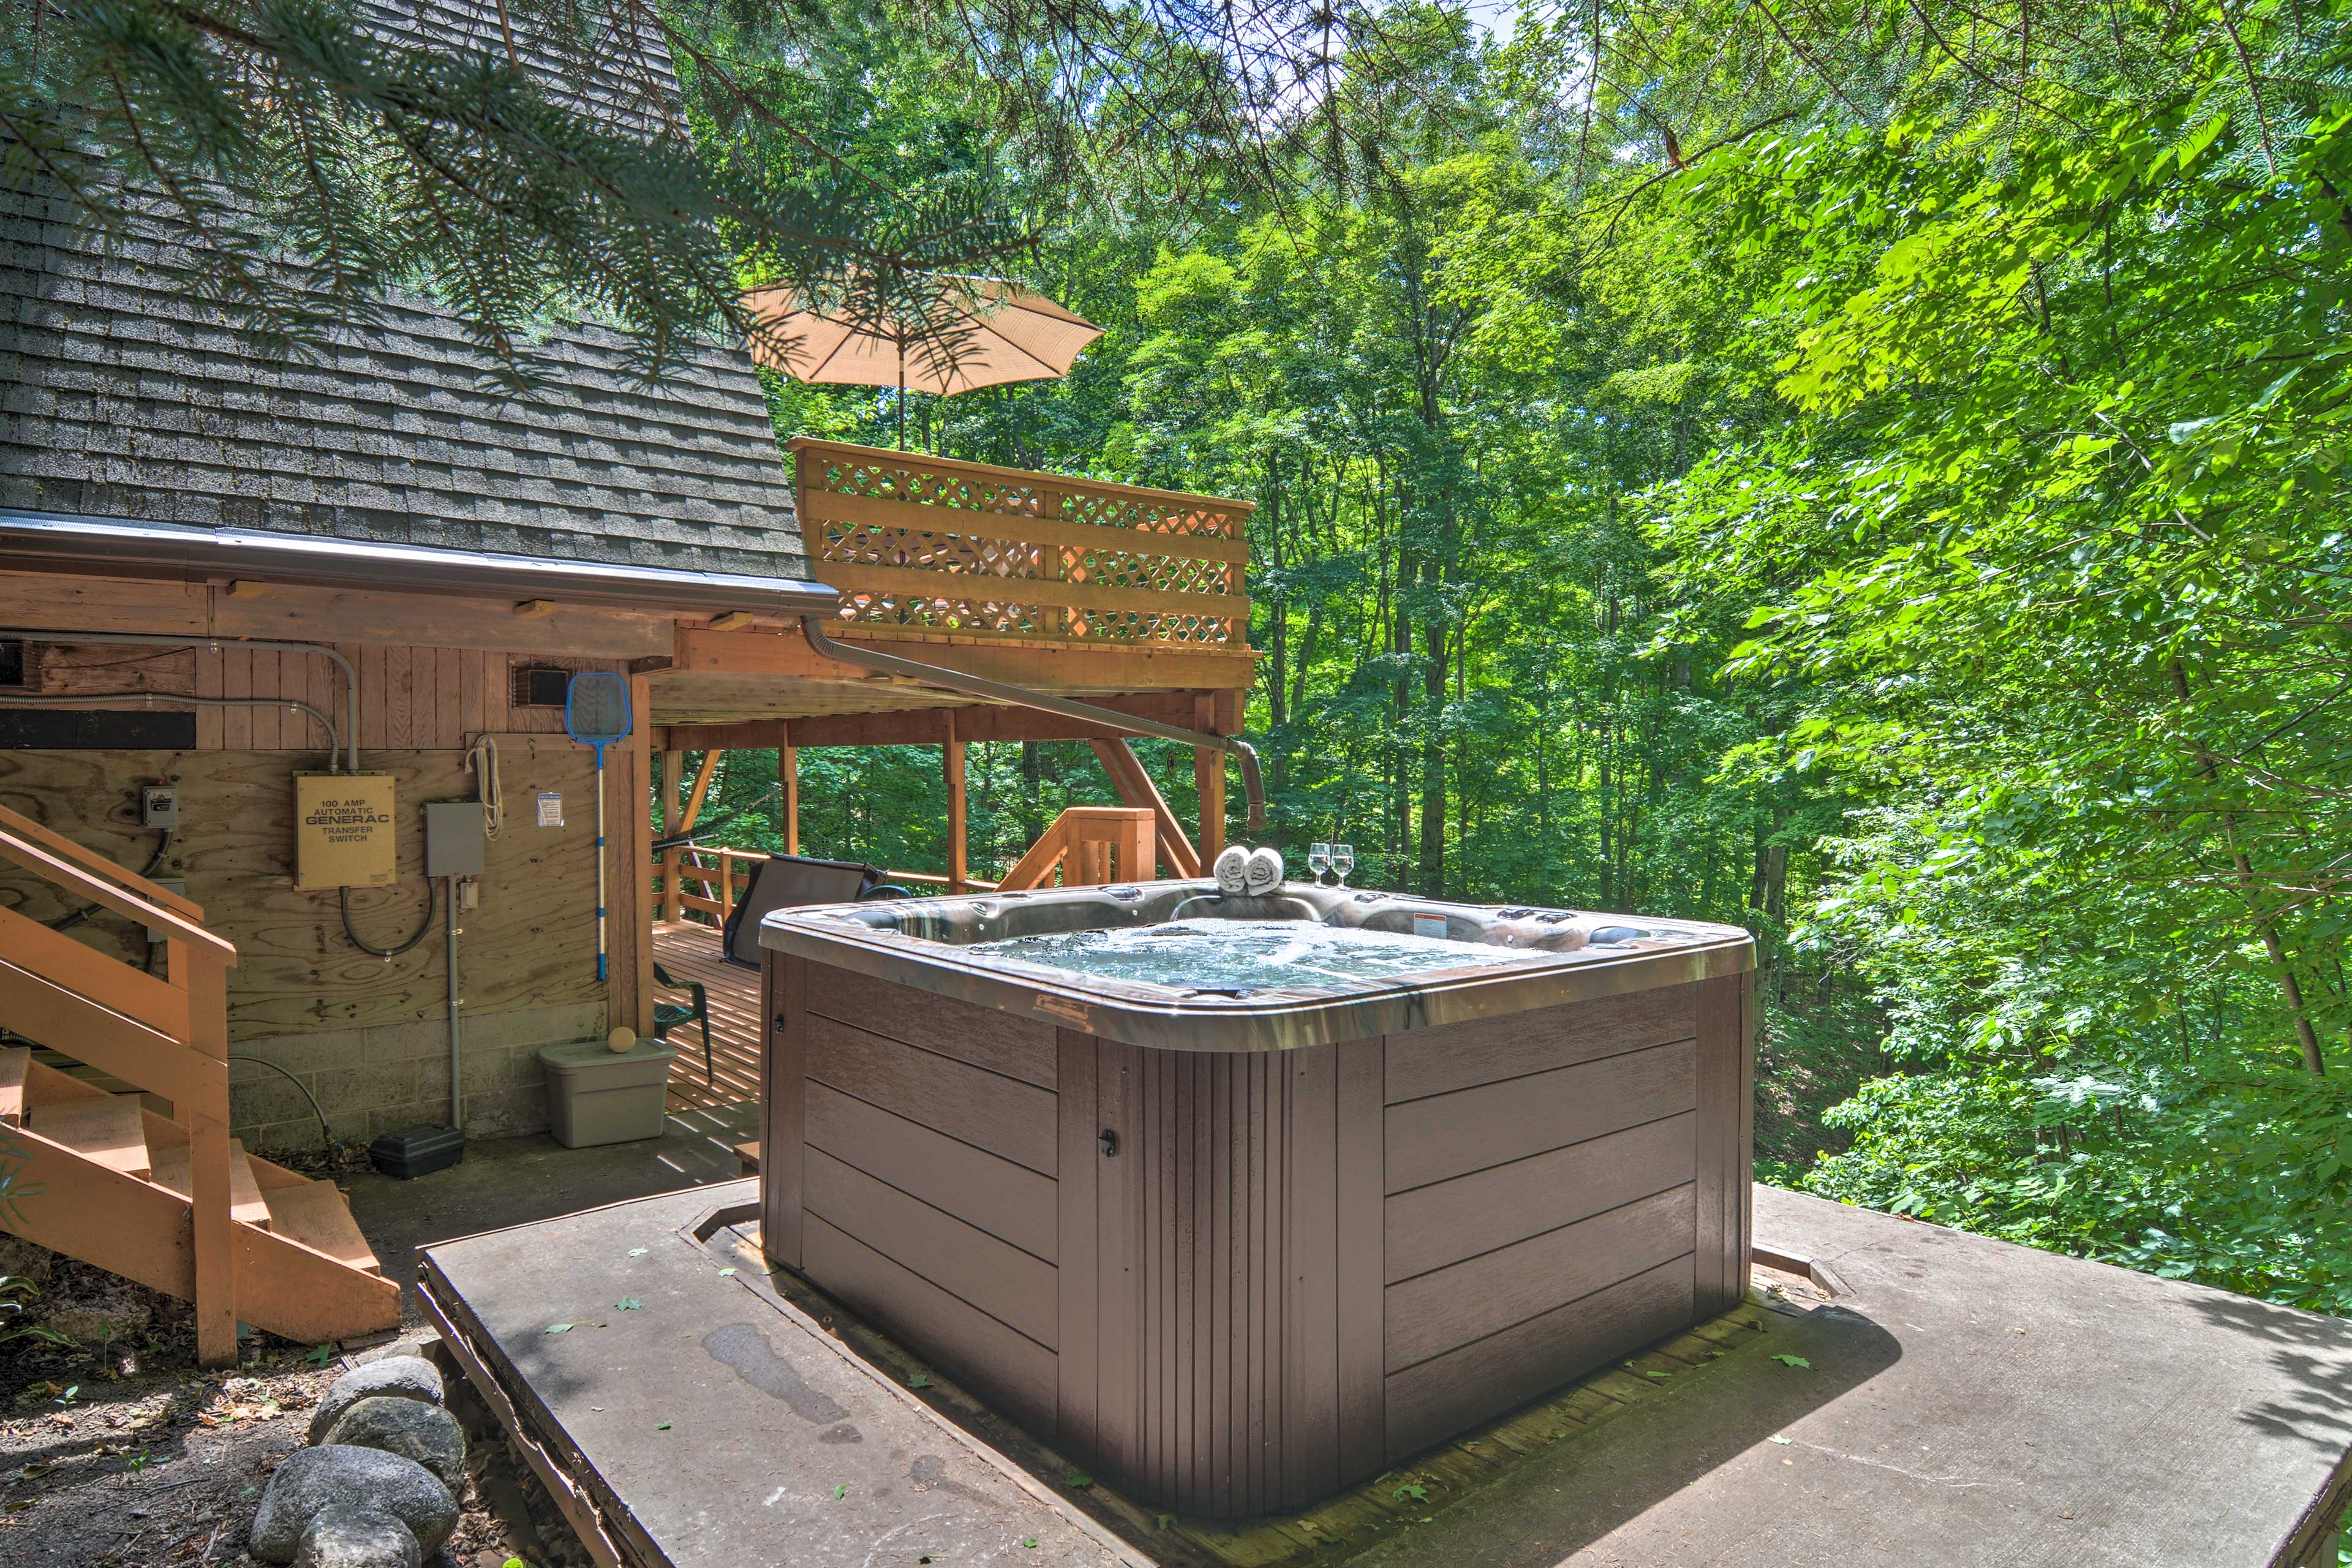 Go for a soak in the hot tub!